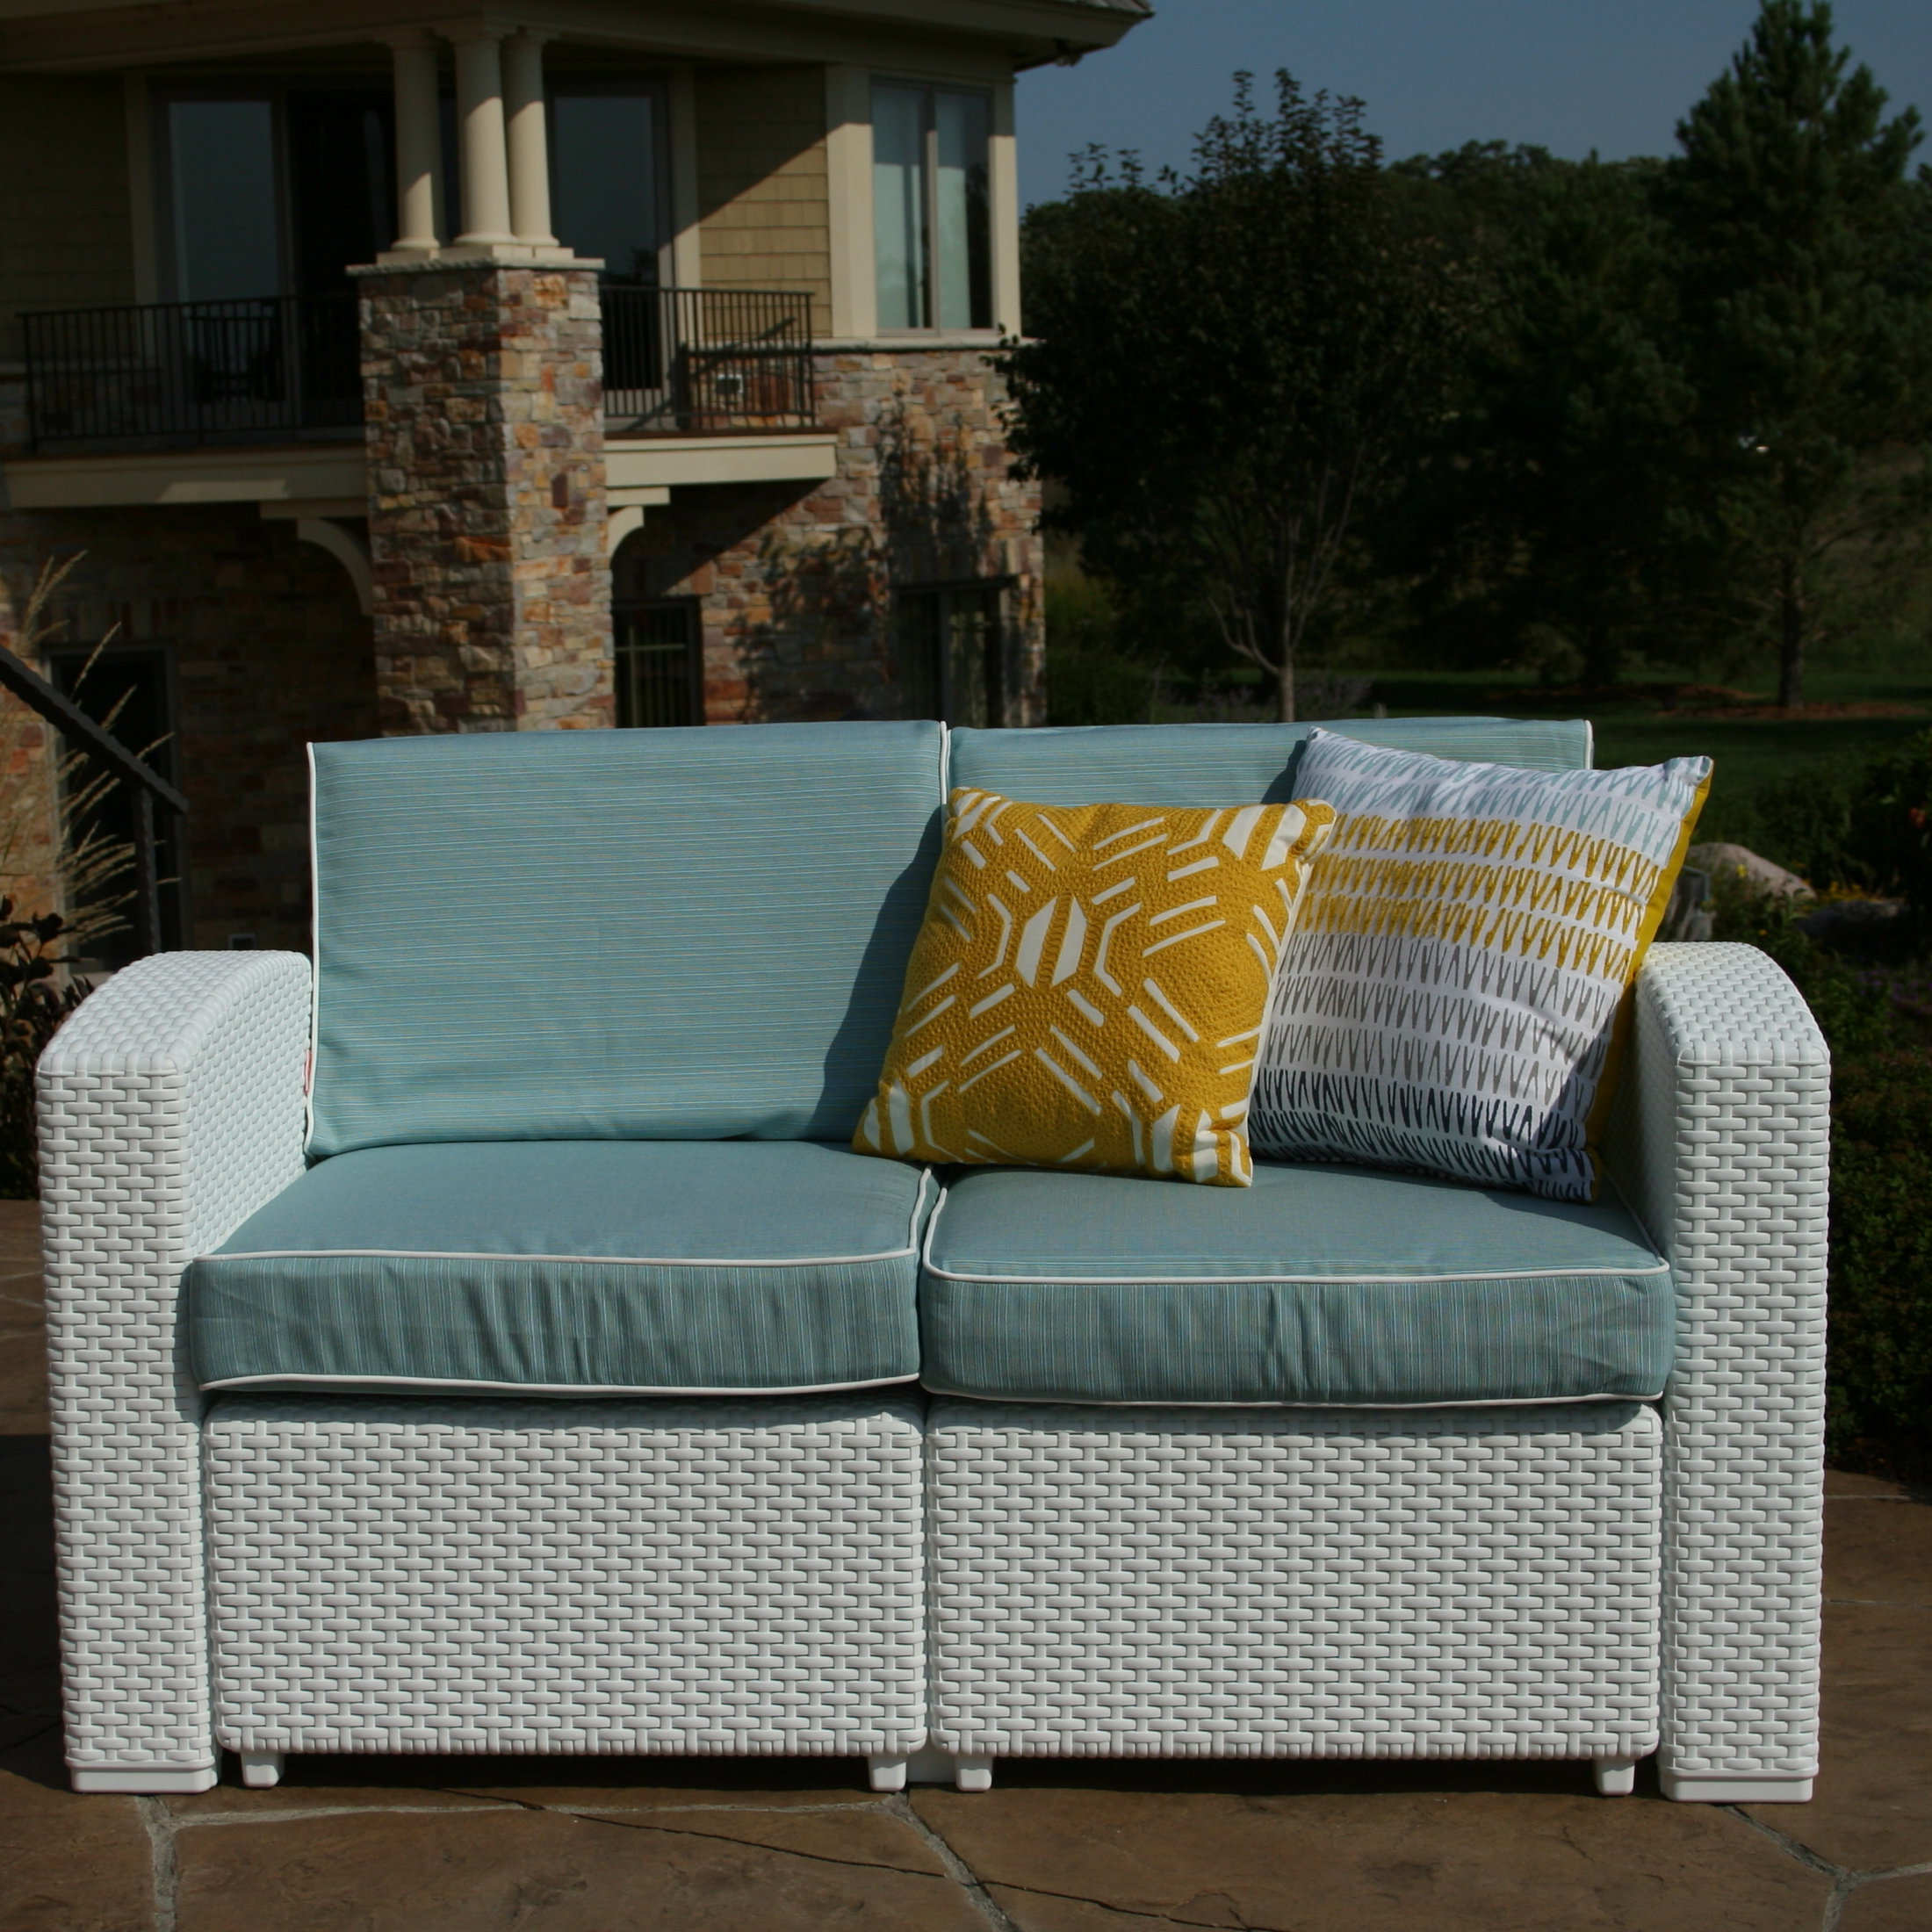 Loggins Patio Loveseat With Cushions Intended For Widely Used Loggins Patio Sofas With Cushions (Gallery 4 of 20)